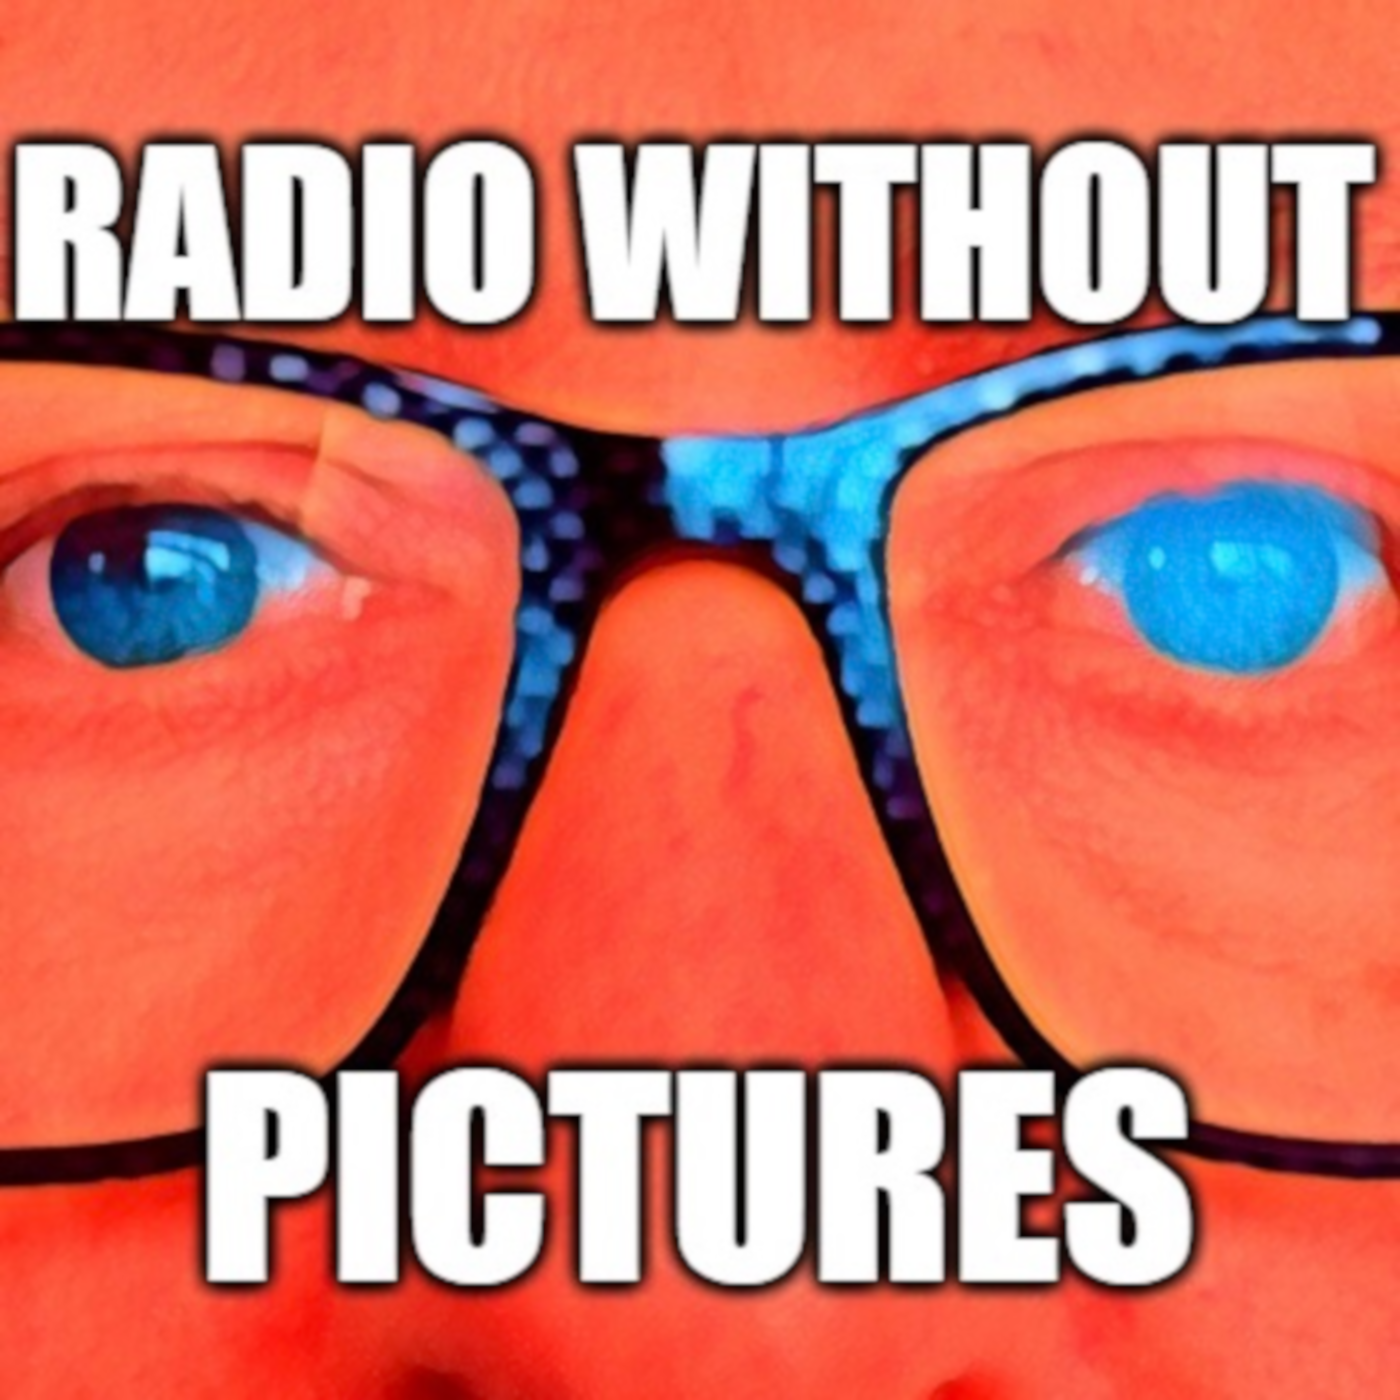 Radio without Pictures - Darren Ludlow-19-11-2018